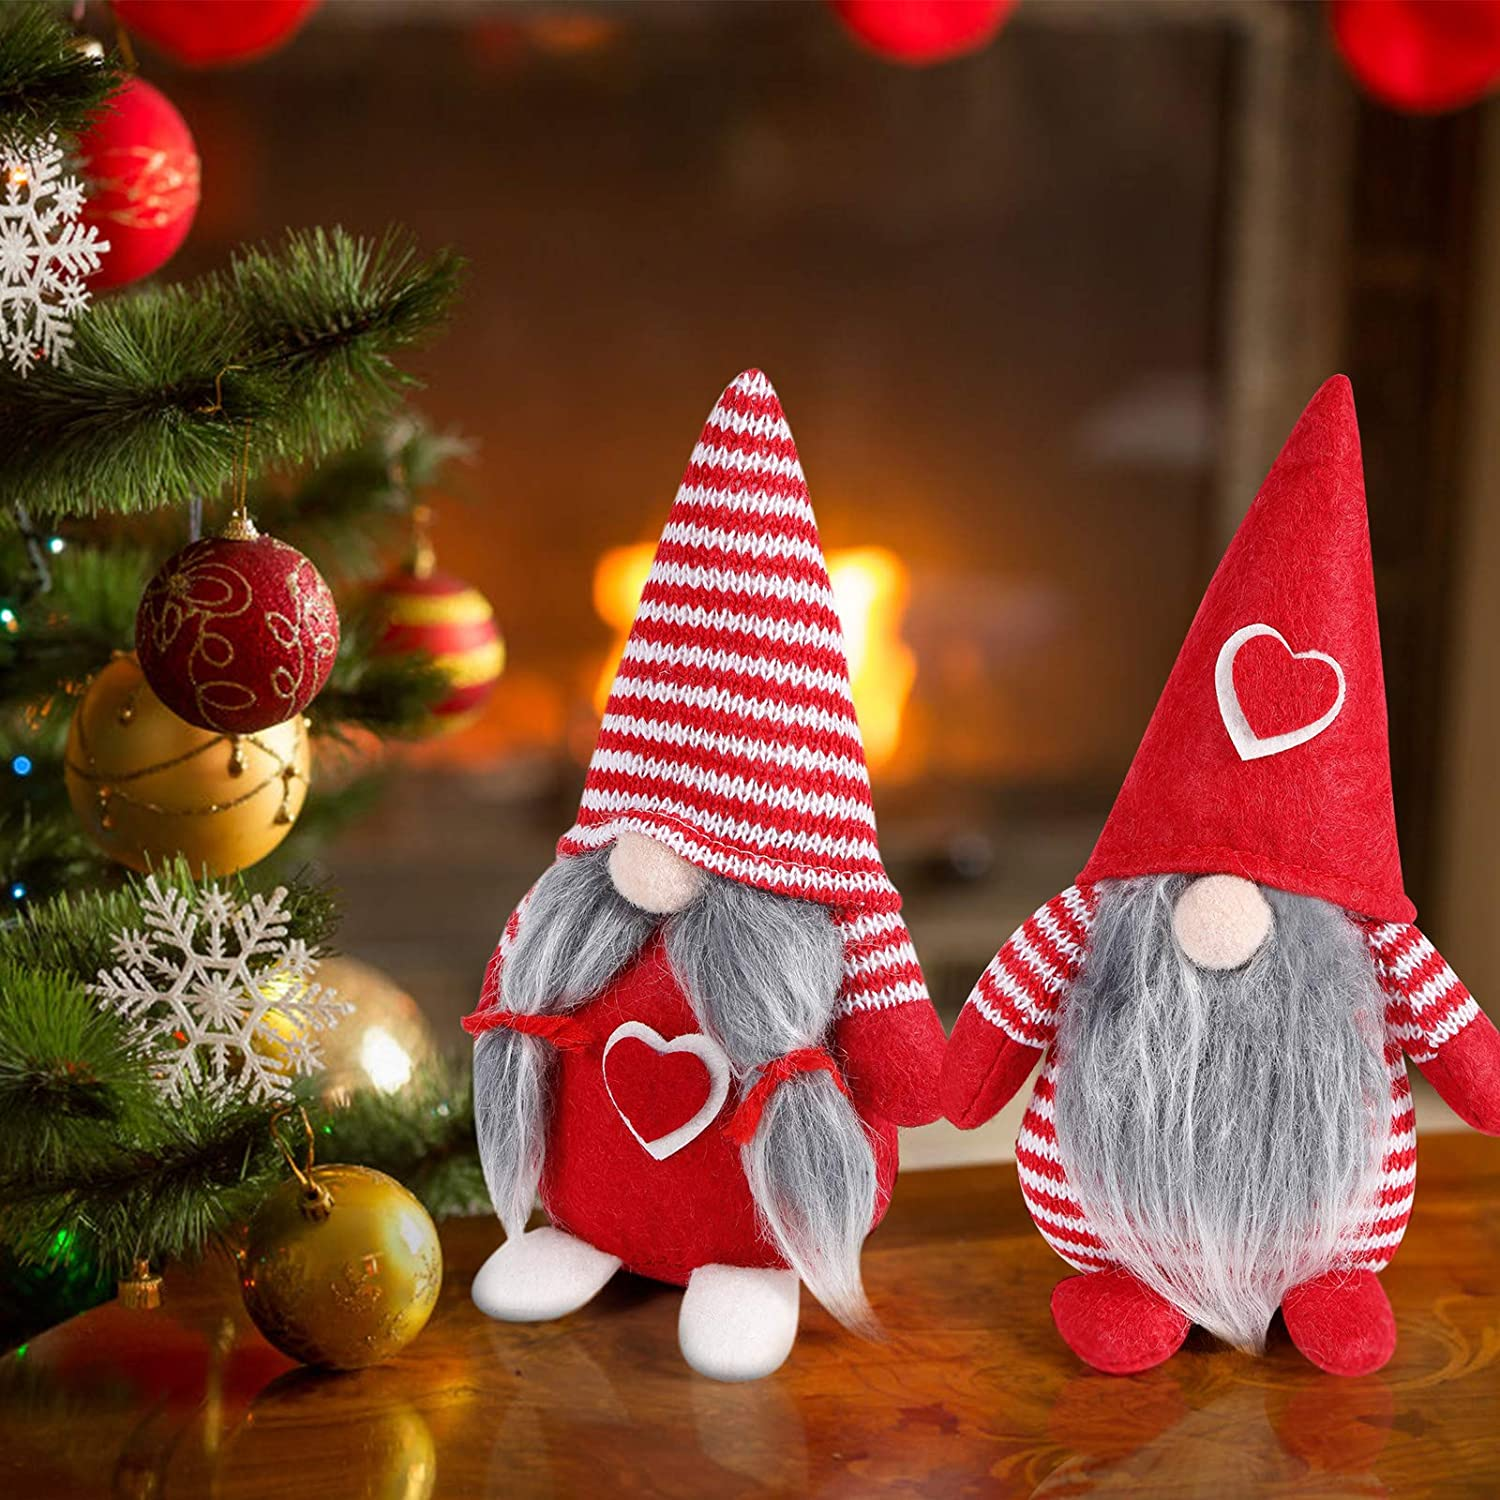 IDJWVU 2Pcs Christmas Gnome Gifts Holiday Decoration Handmade Faceless Love Doll Gifts Home Ornaments Plush Long Leg Tabletop Santa Figurines (Red)